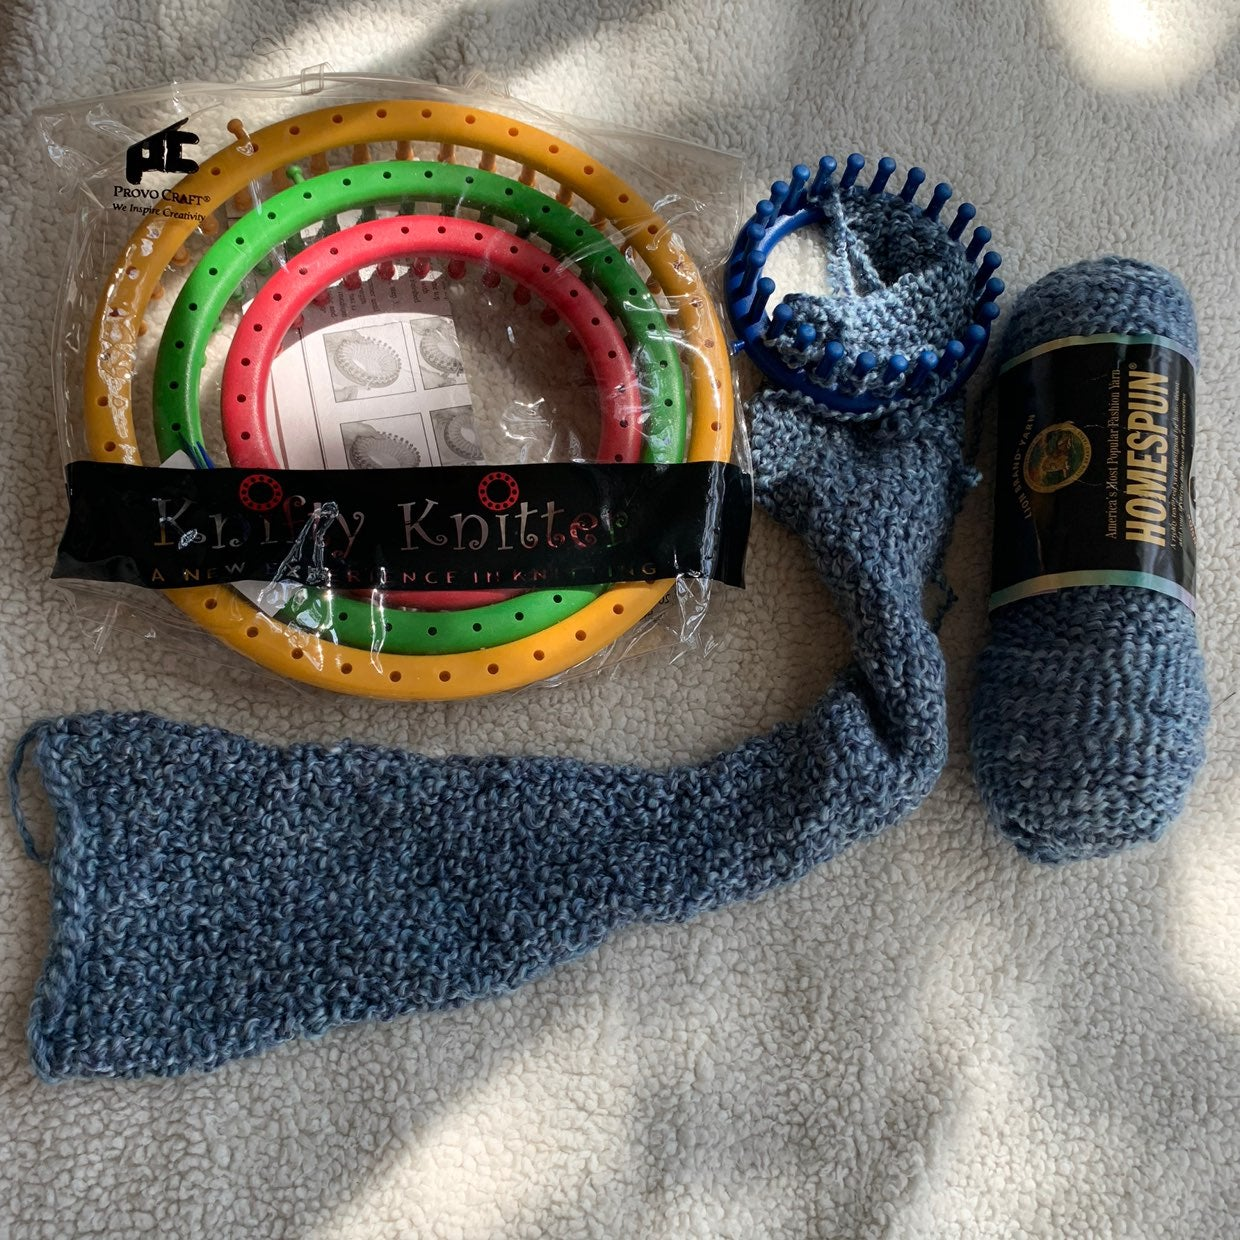 Knifty Knitter Loom Set and yarn